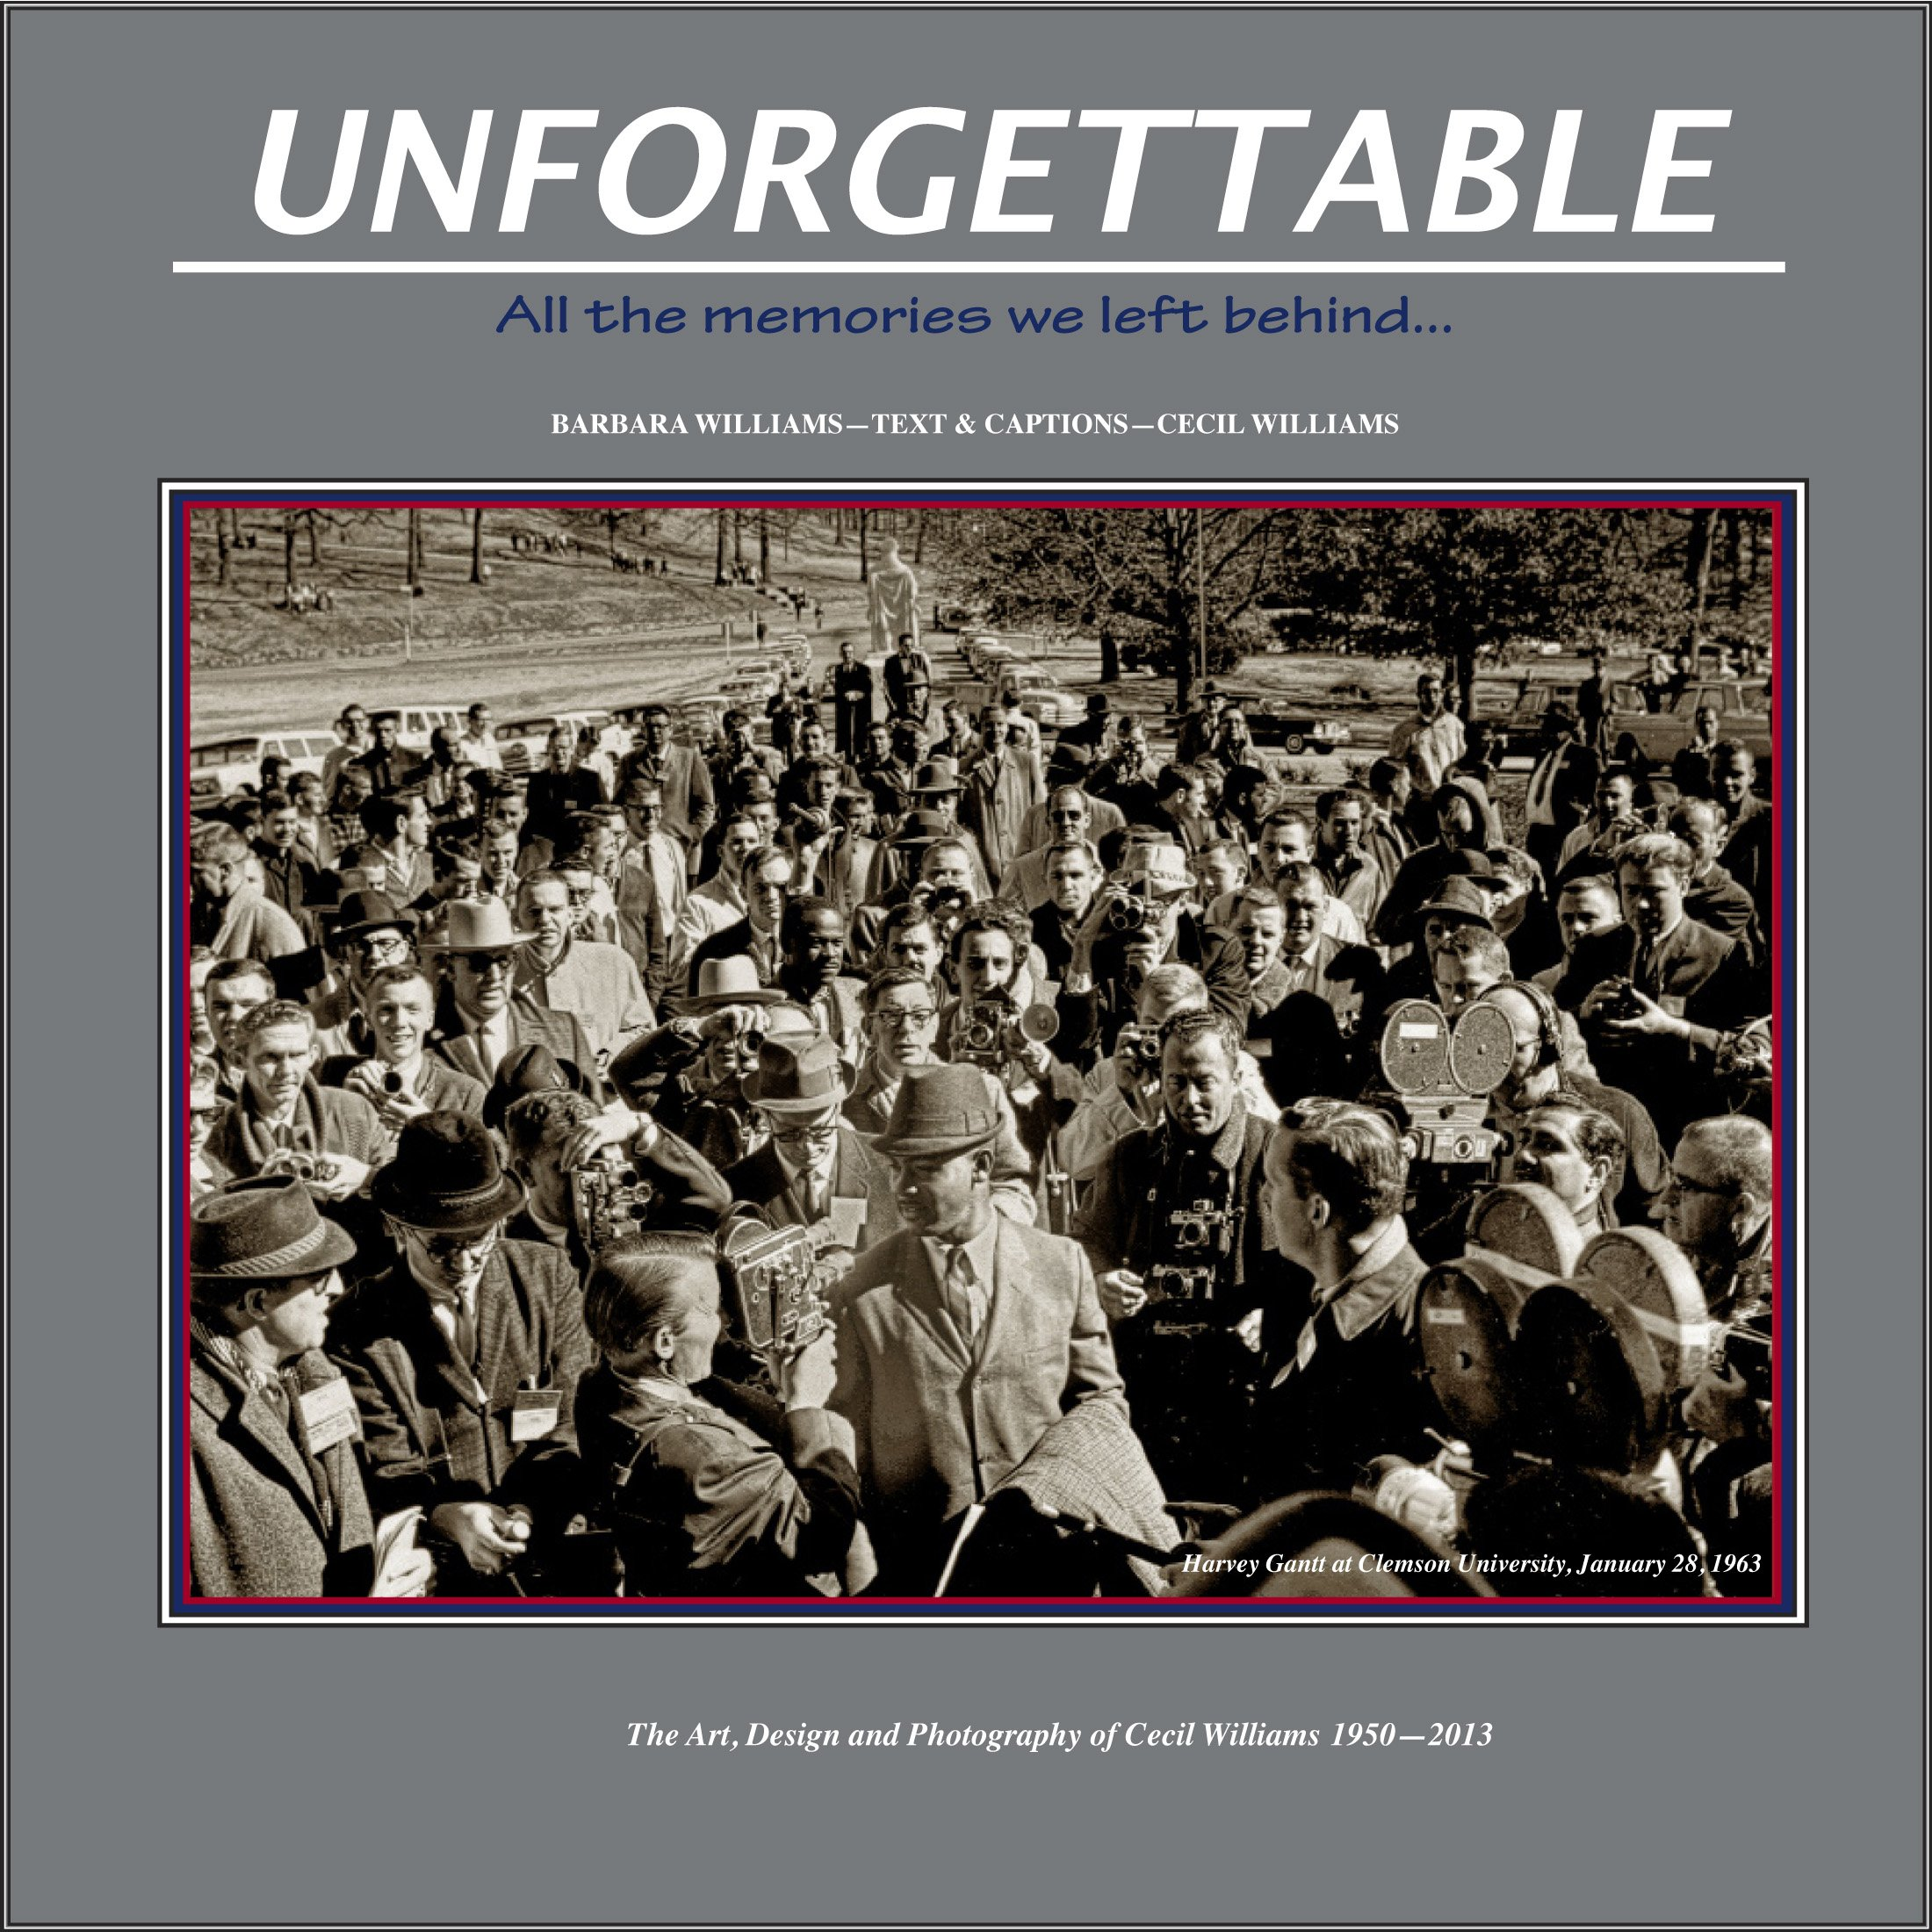 """Unforgettable: Celebrating a Time of Life, Hope and Bravery"" A Traveling Exhibit by Cecil Williams, Richland Main Library"